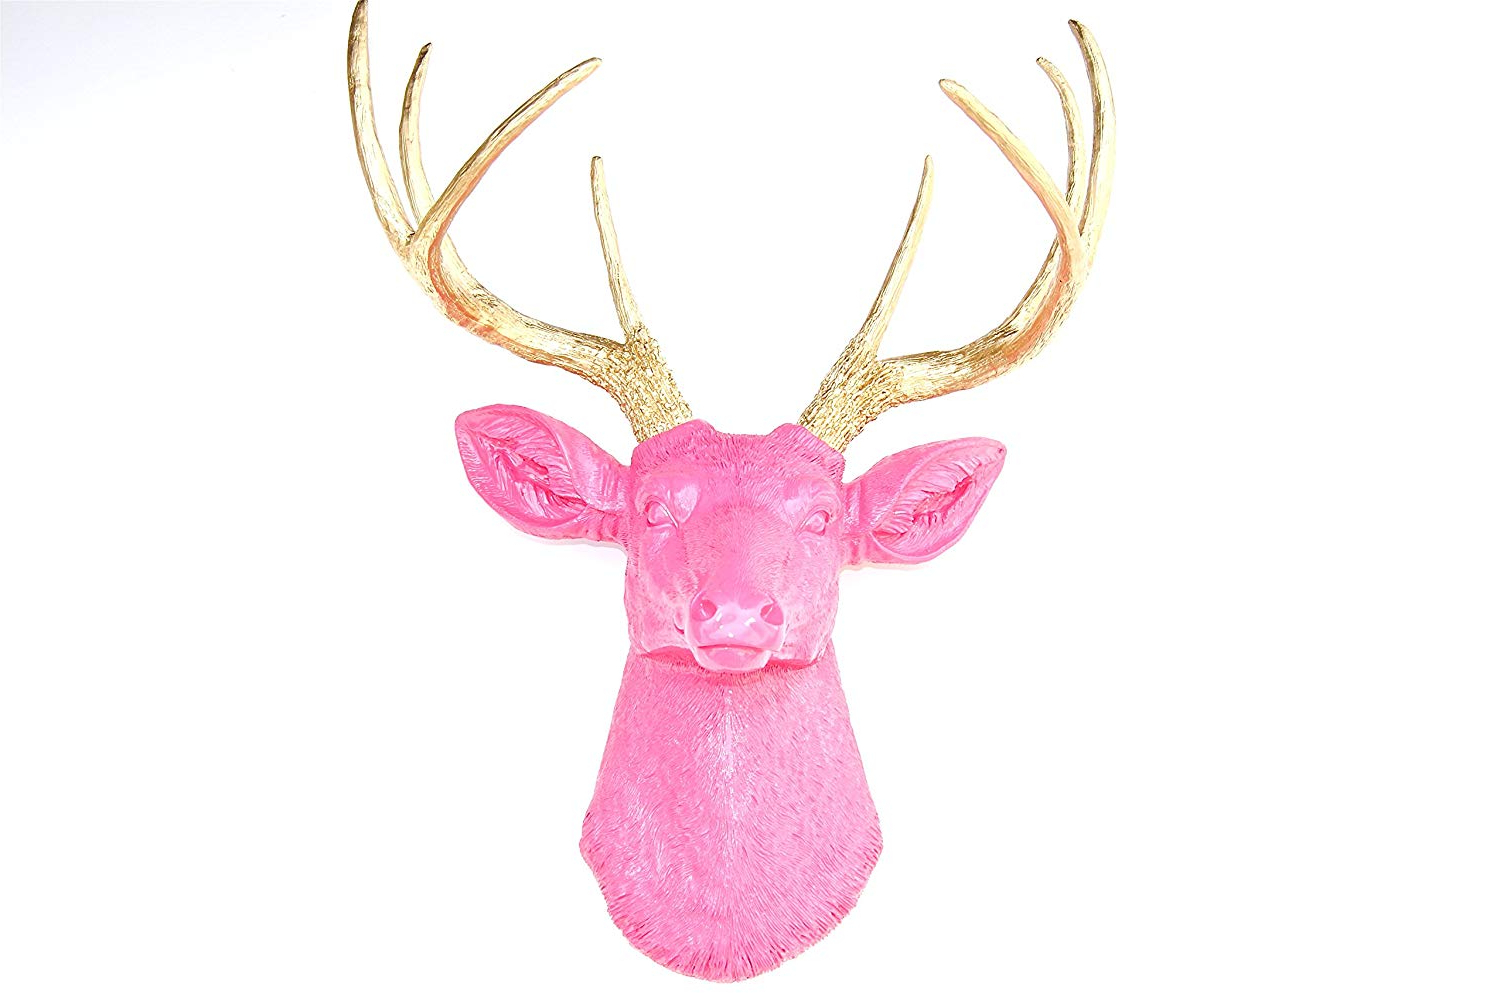 Amazon: Near And Deer D6363 Faux Taxidermy 8 Point Deer Head Throughout Popular Atlantis Faux Taxidermy Wall Decor (View 14 of 20)